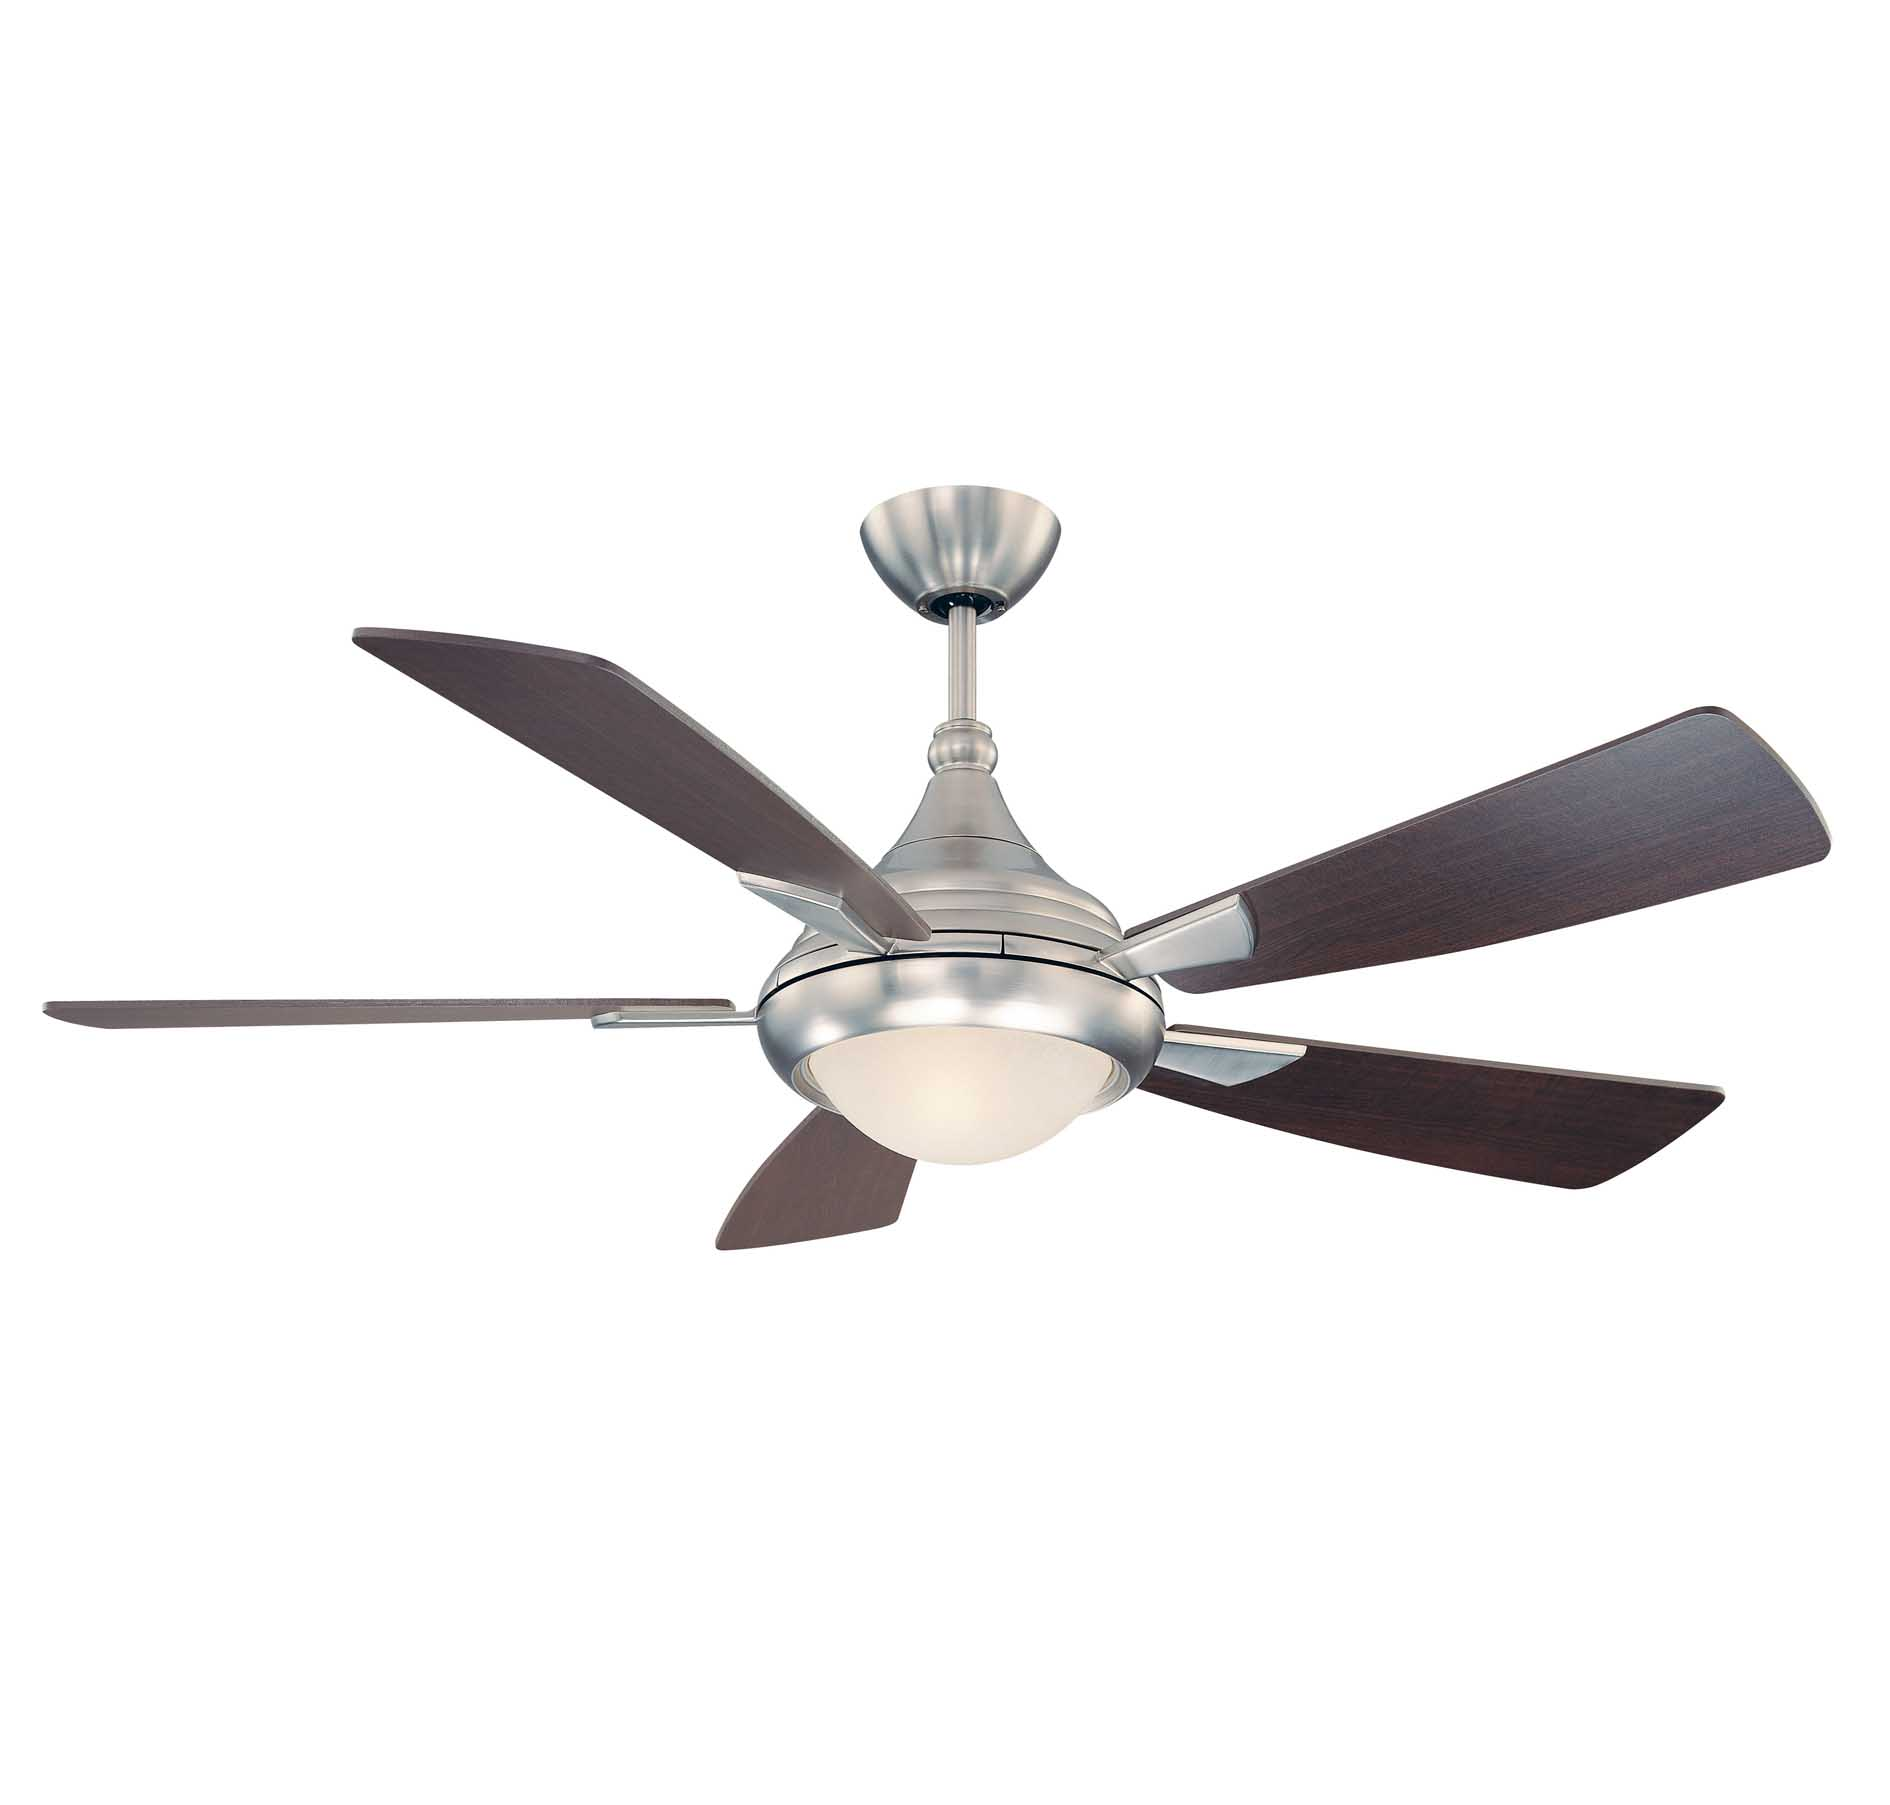 zephyr ceiling fan photo - 1